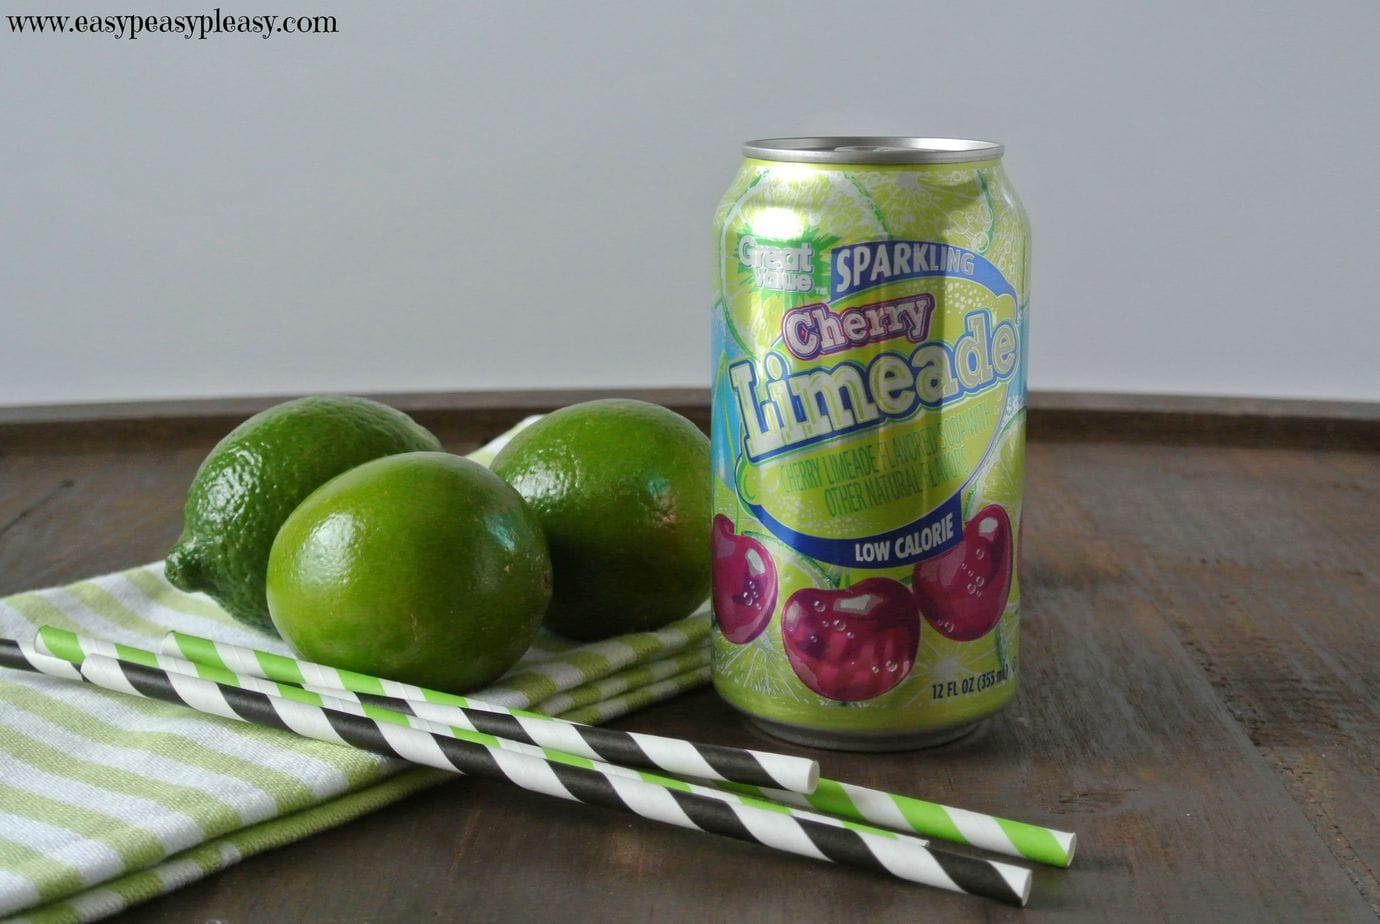 out with a low calorie Cherry Limeade! Now we can make Cherry Limeade ...